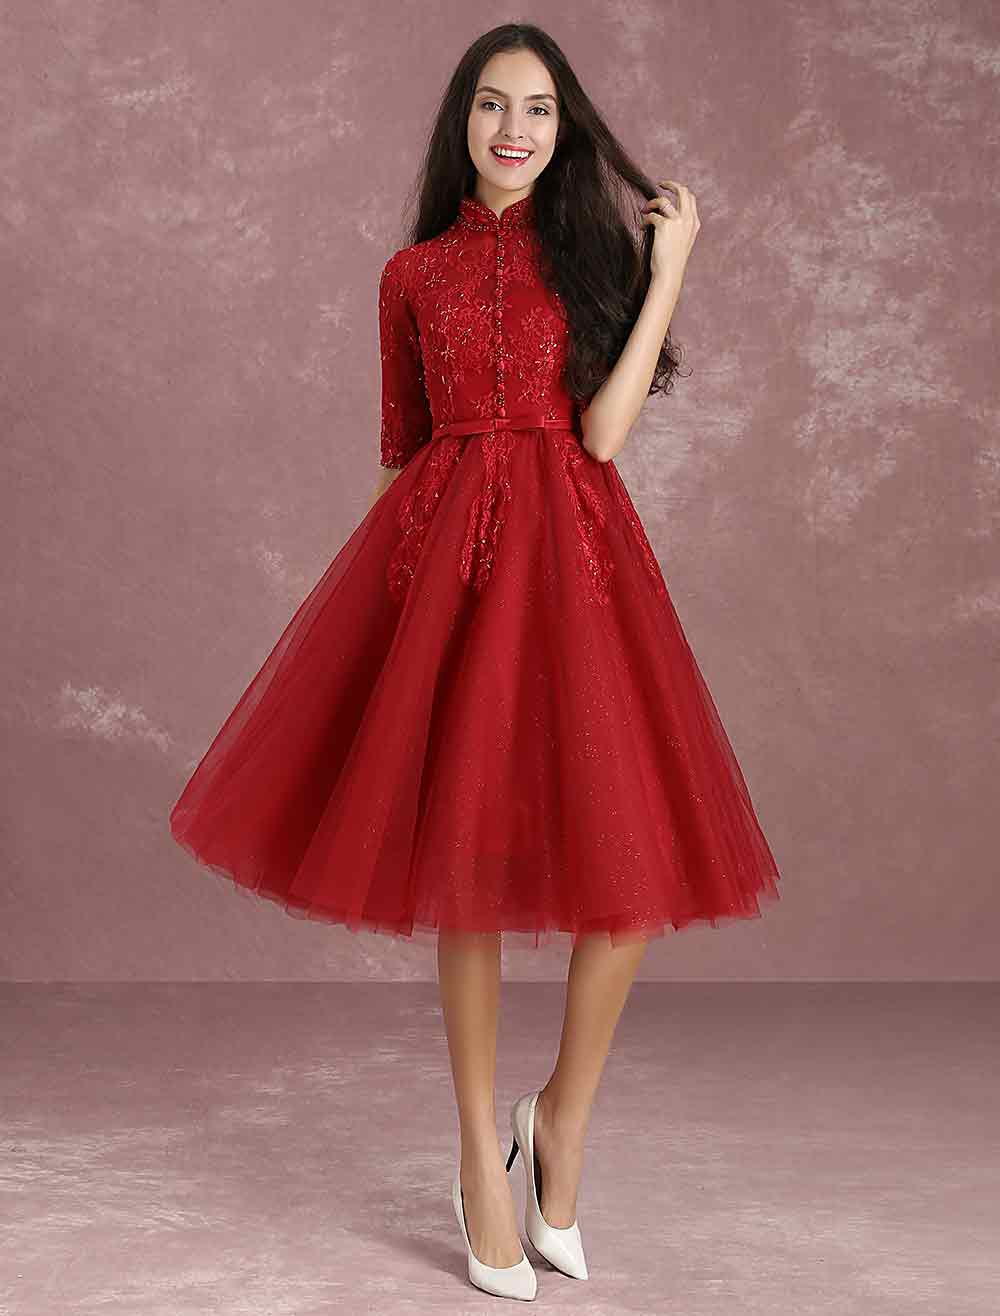 Buy Burgundy Homecoming Dress Tulle Short Prom Dresses Mandarin Collar Half Sleeve Button Lace Applique Beading Bow Sash A Line Tea Length Cocktail Dress for $118.79 in Milanoo store